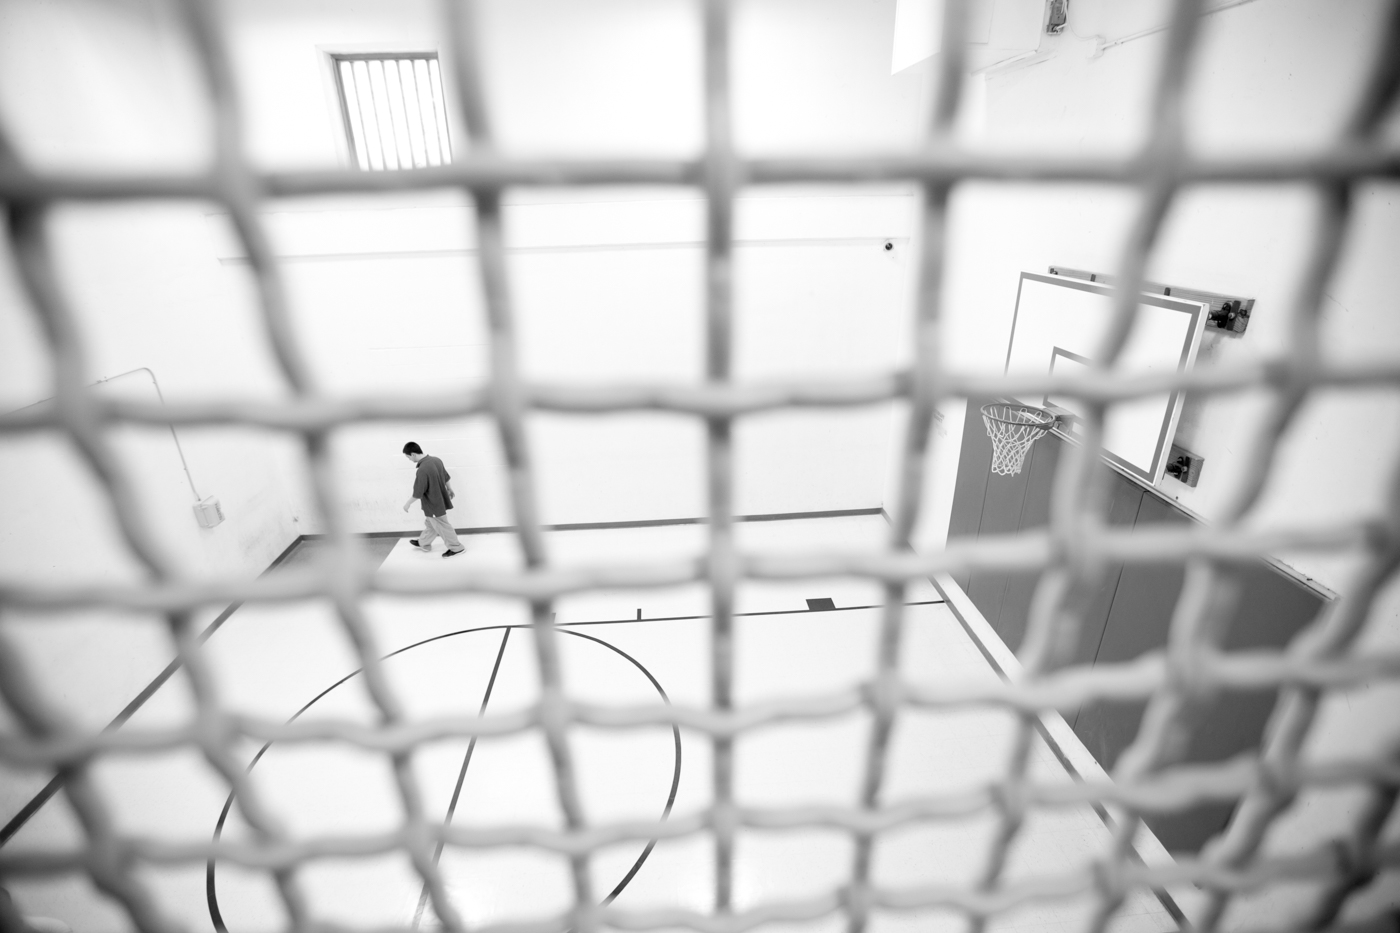 CARA participant Joe Santerre paces the indoor recreation facility at the Kennebec County Correctional Facility. Santerre's original sentence extended past the eix week length of the CARA program and he was unsure whether the sheriff would release him upon his completion. The CARA program relies on segregating participants from the general population in order to create an environment where the core causes of addiction and criminal behavior can be addressed.